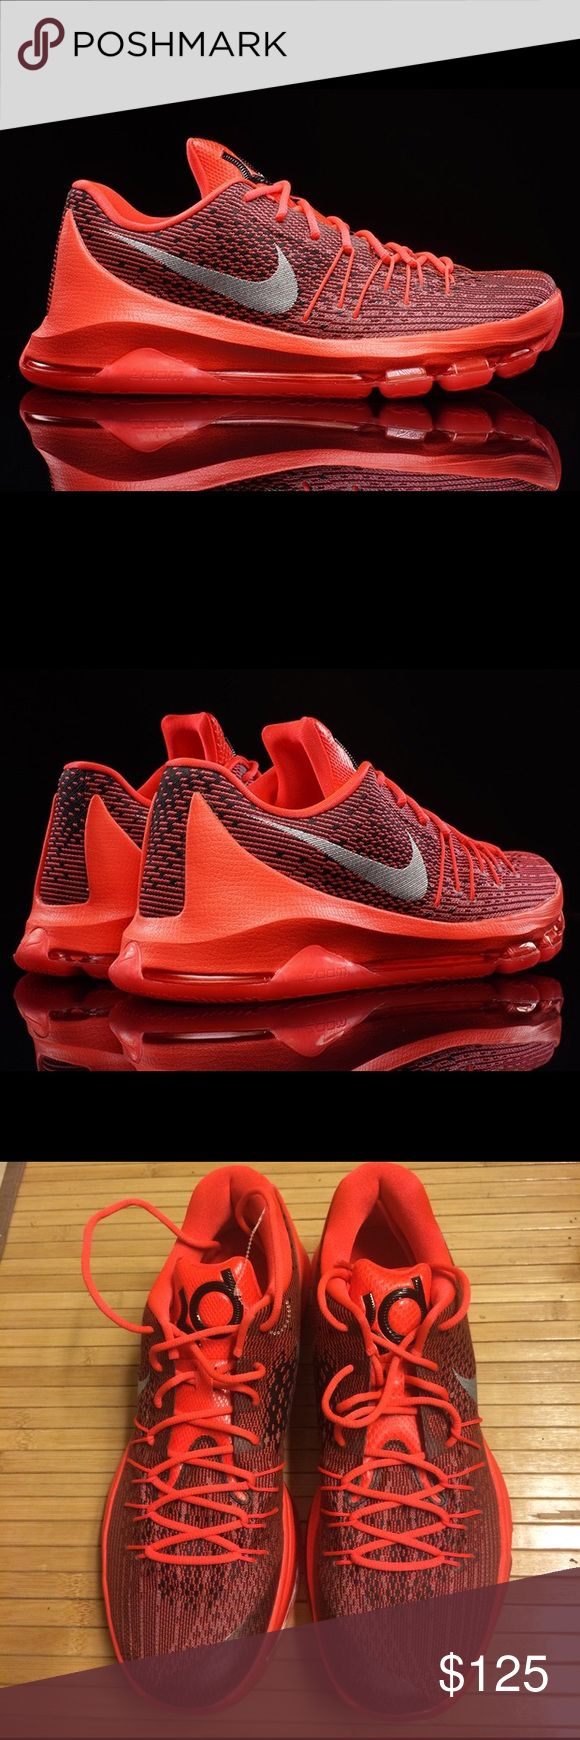 NWOT Nike KD Crimson/Black 8 V-8 Basketball Shoe